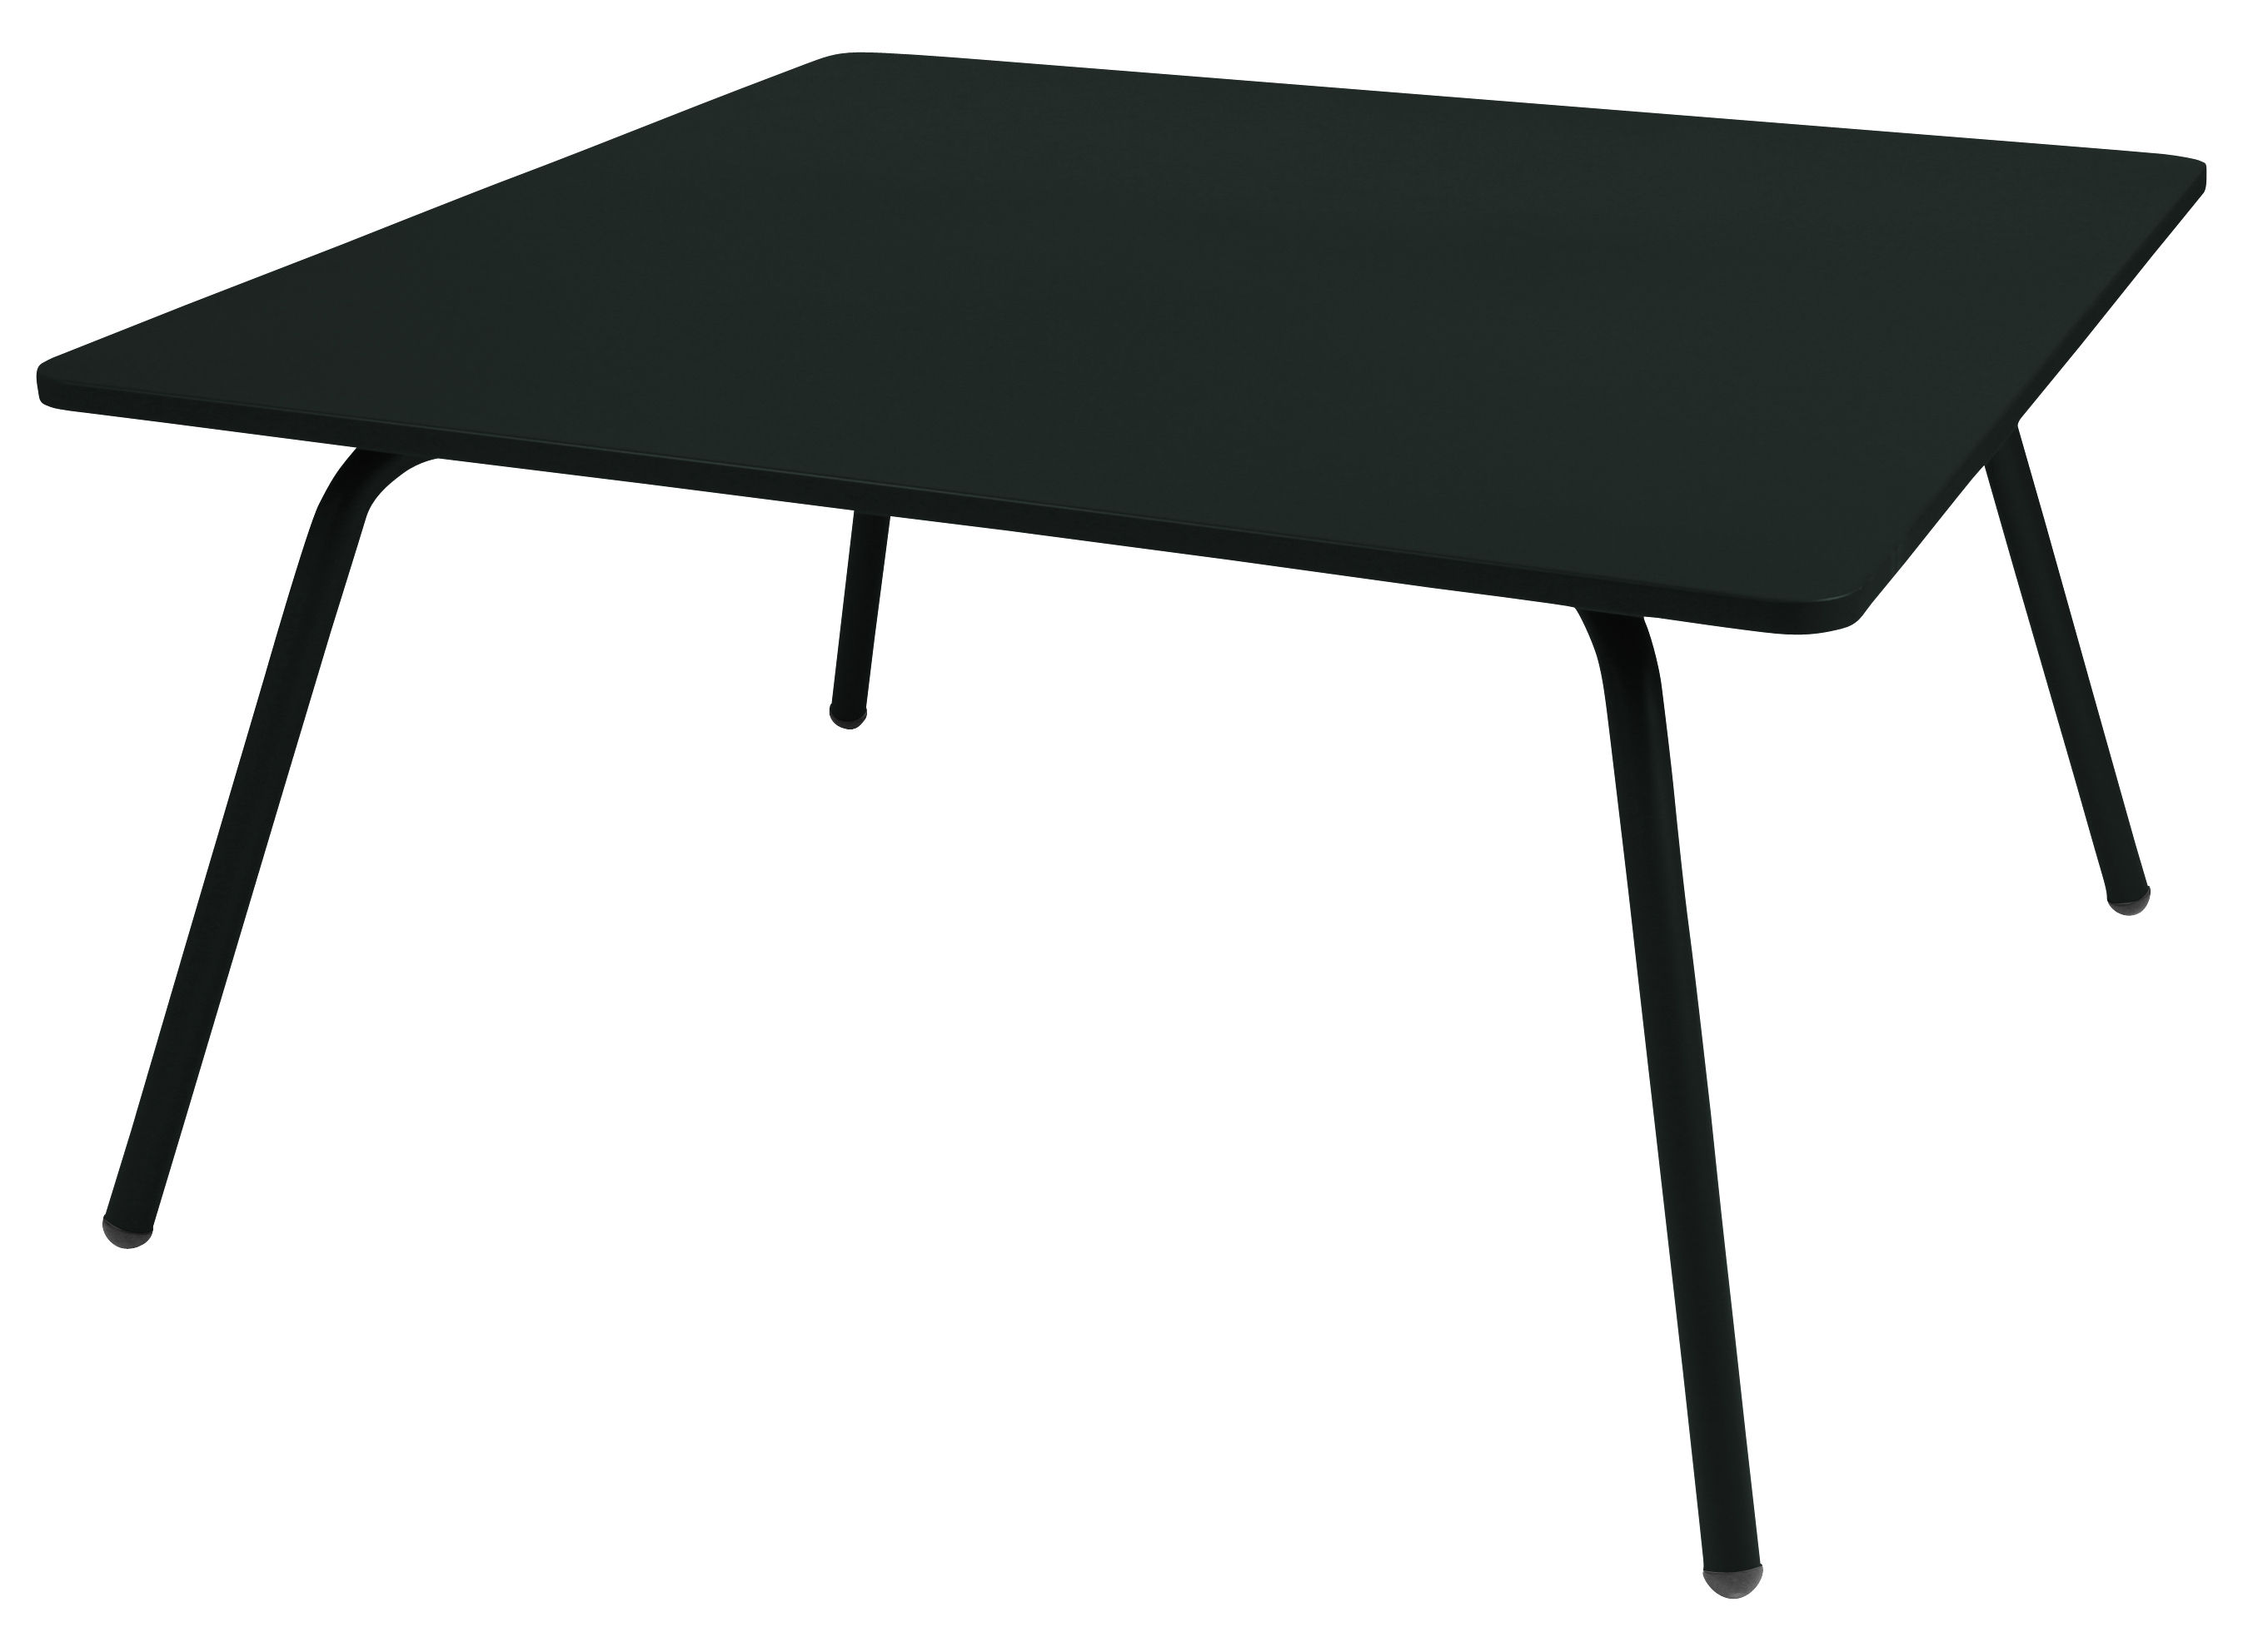 Table cosmo 143 x 143 cm r glisse fermob for Solidworks design table zoom